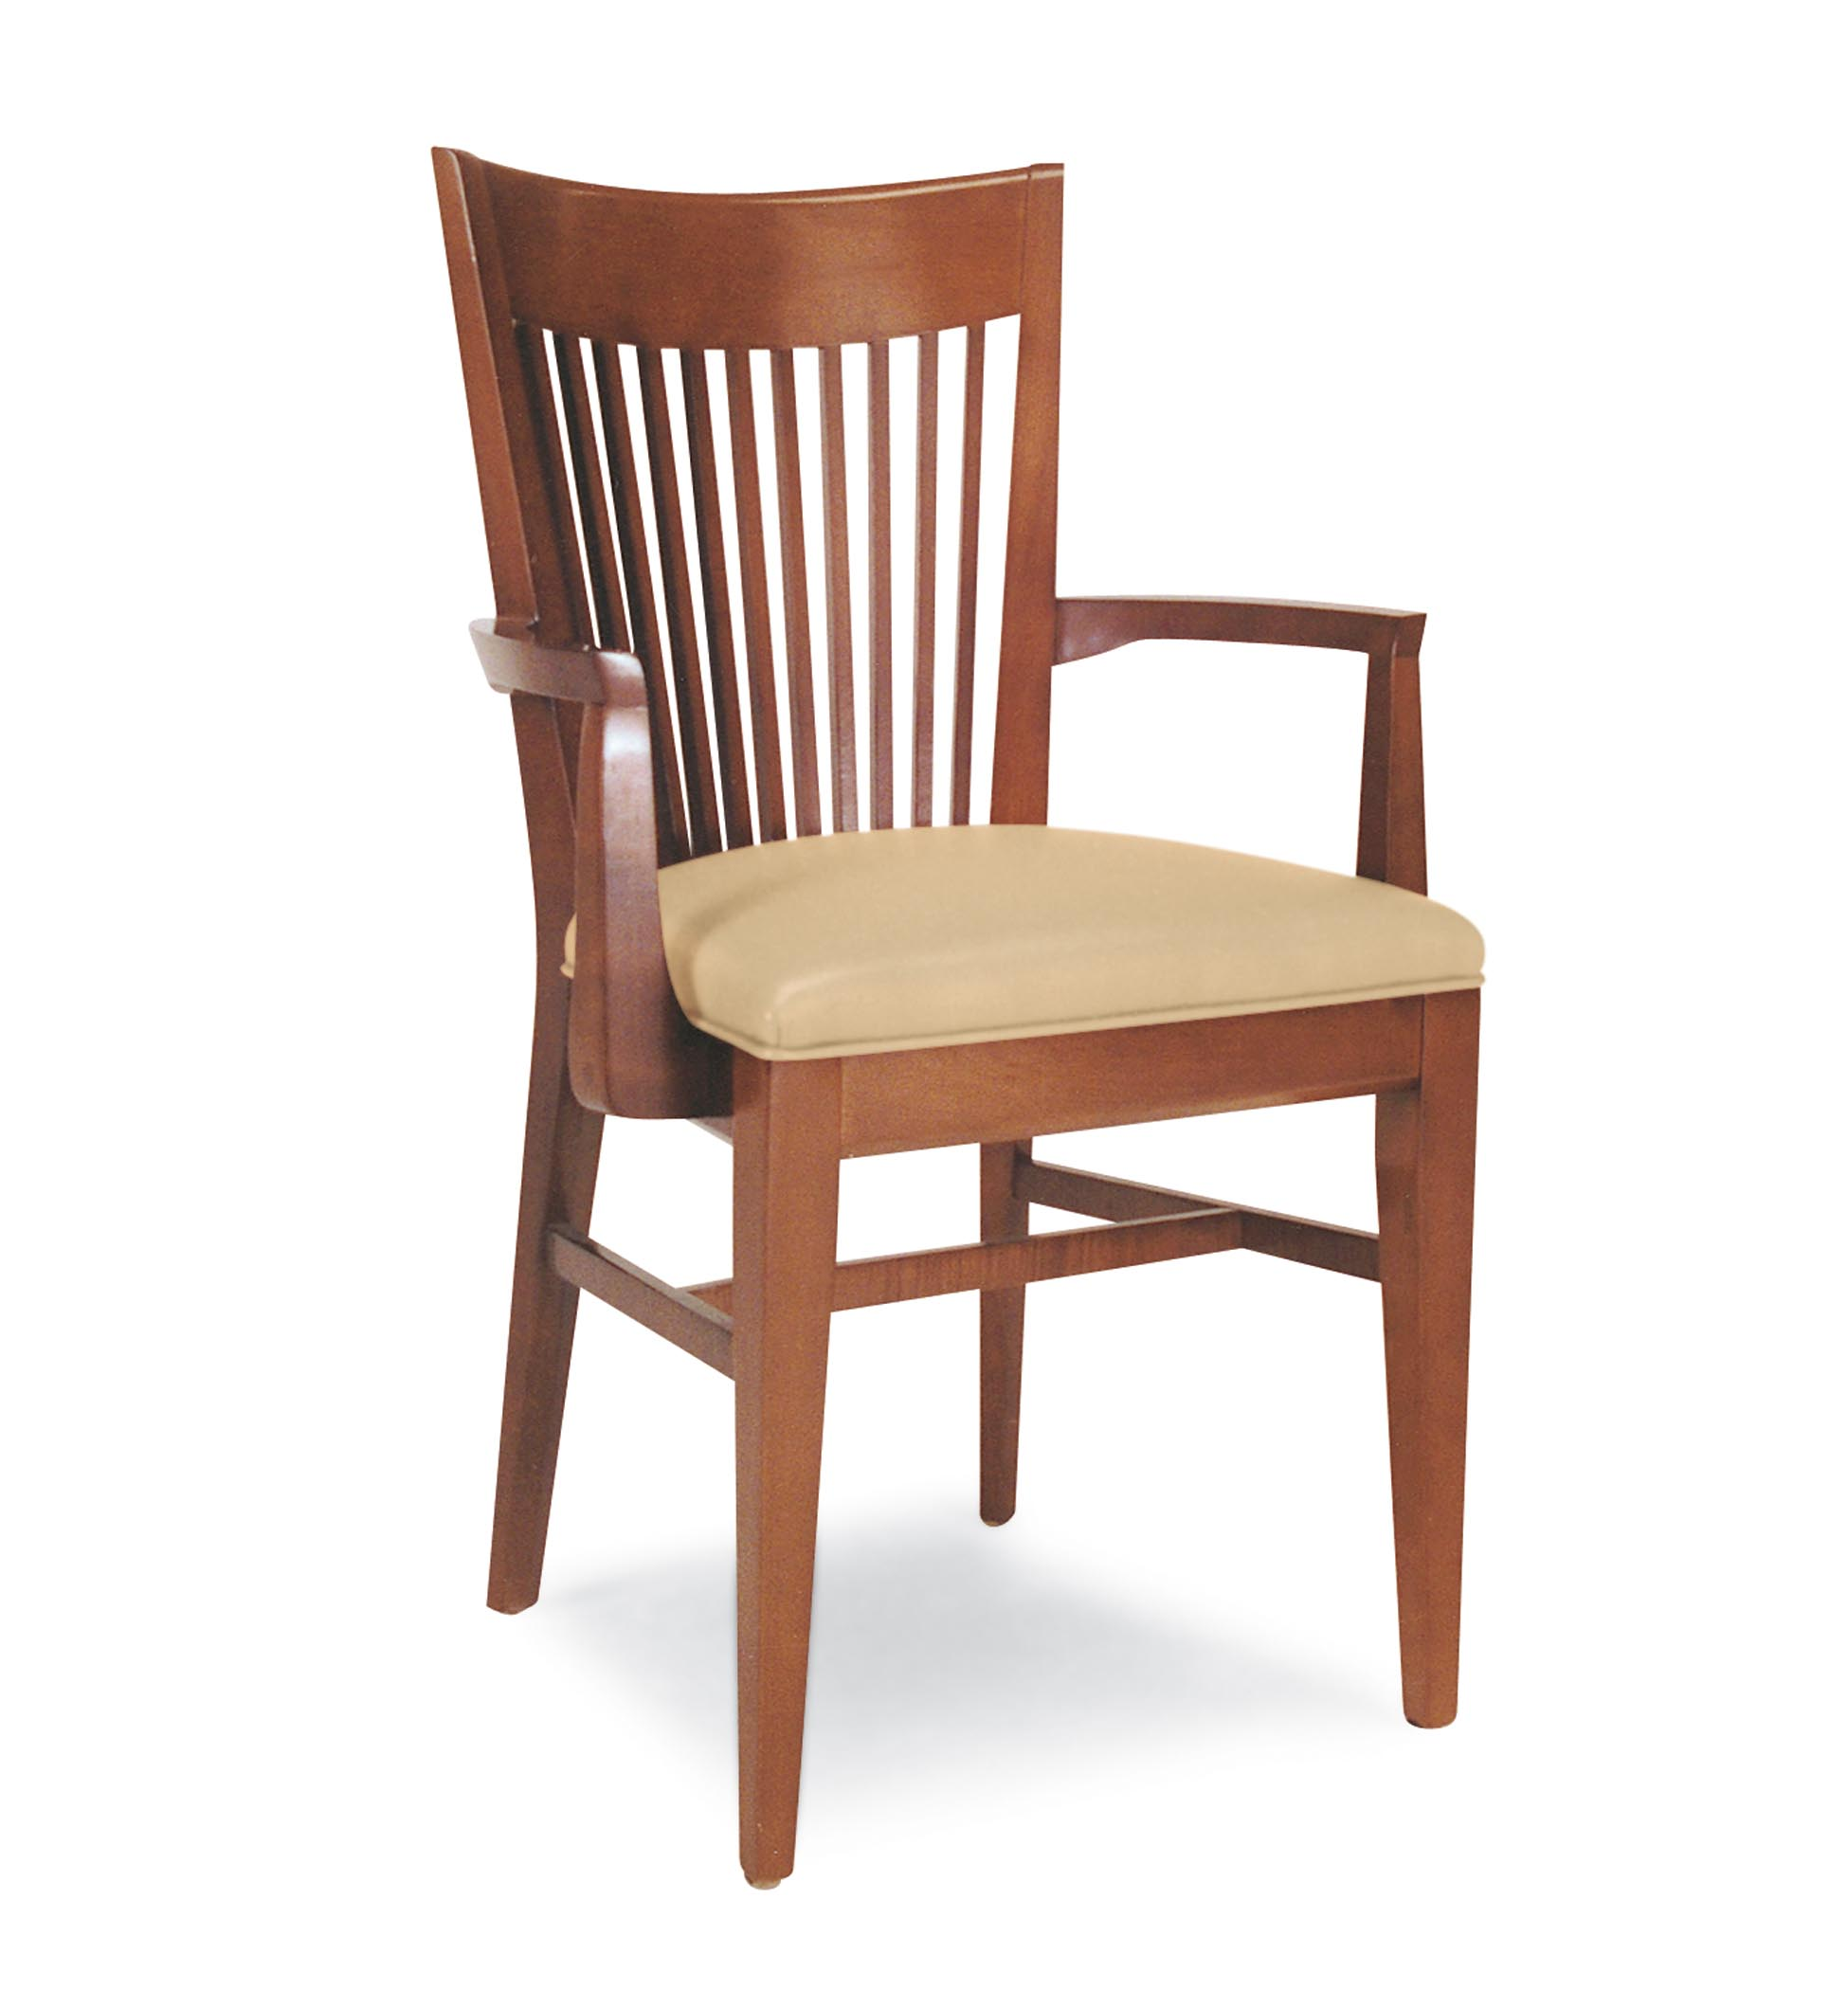 wooden chairs with arms india stadium chair accessories 3365 wood arm